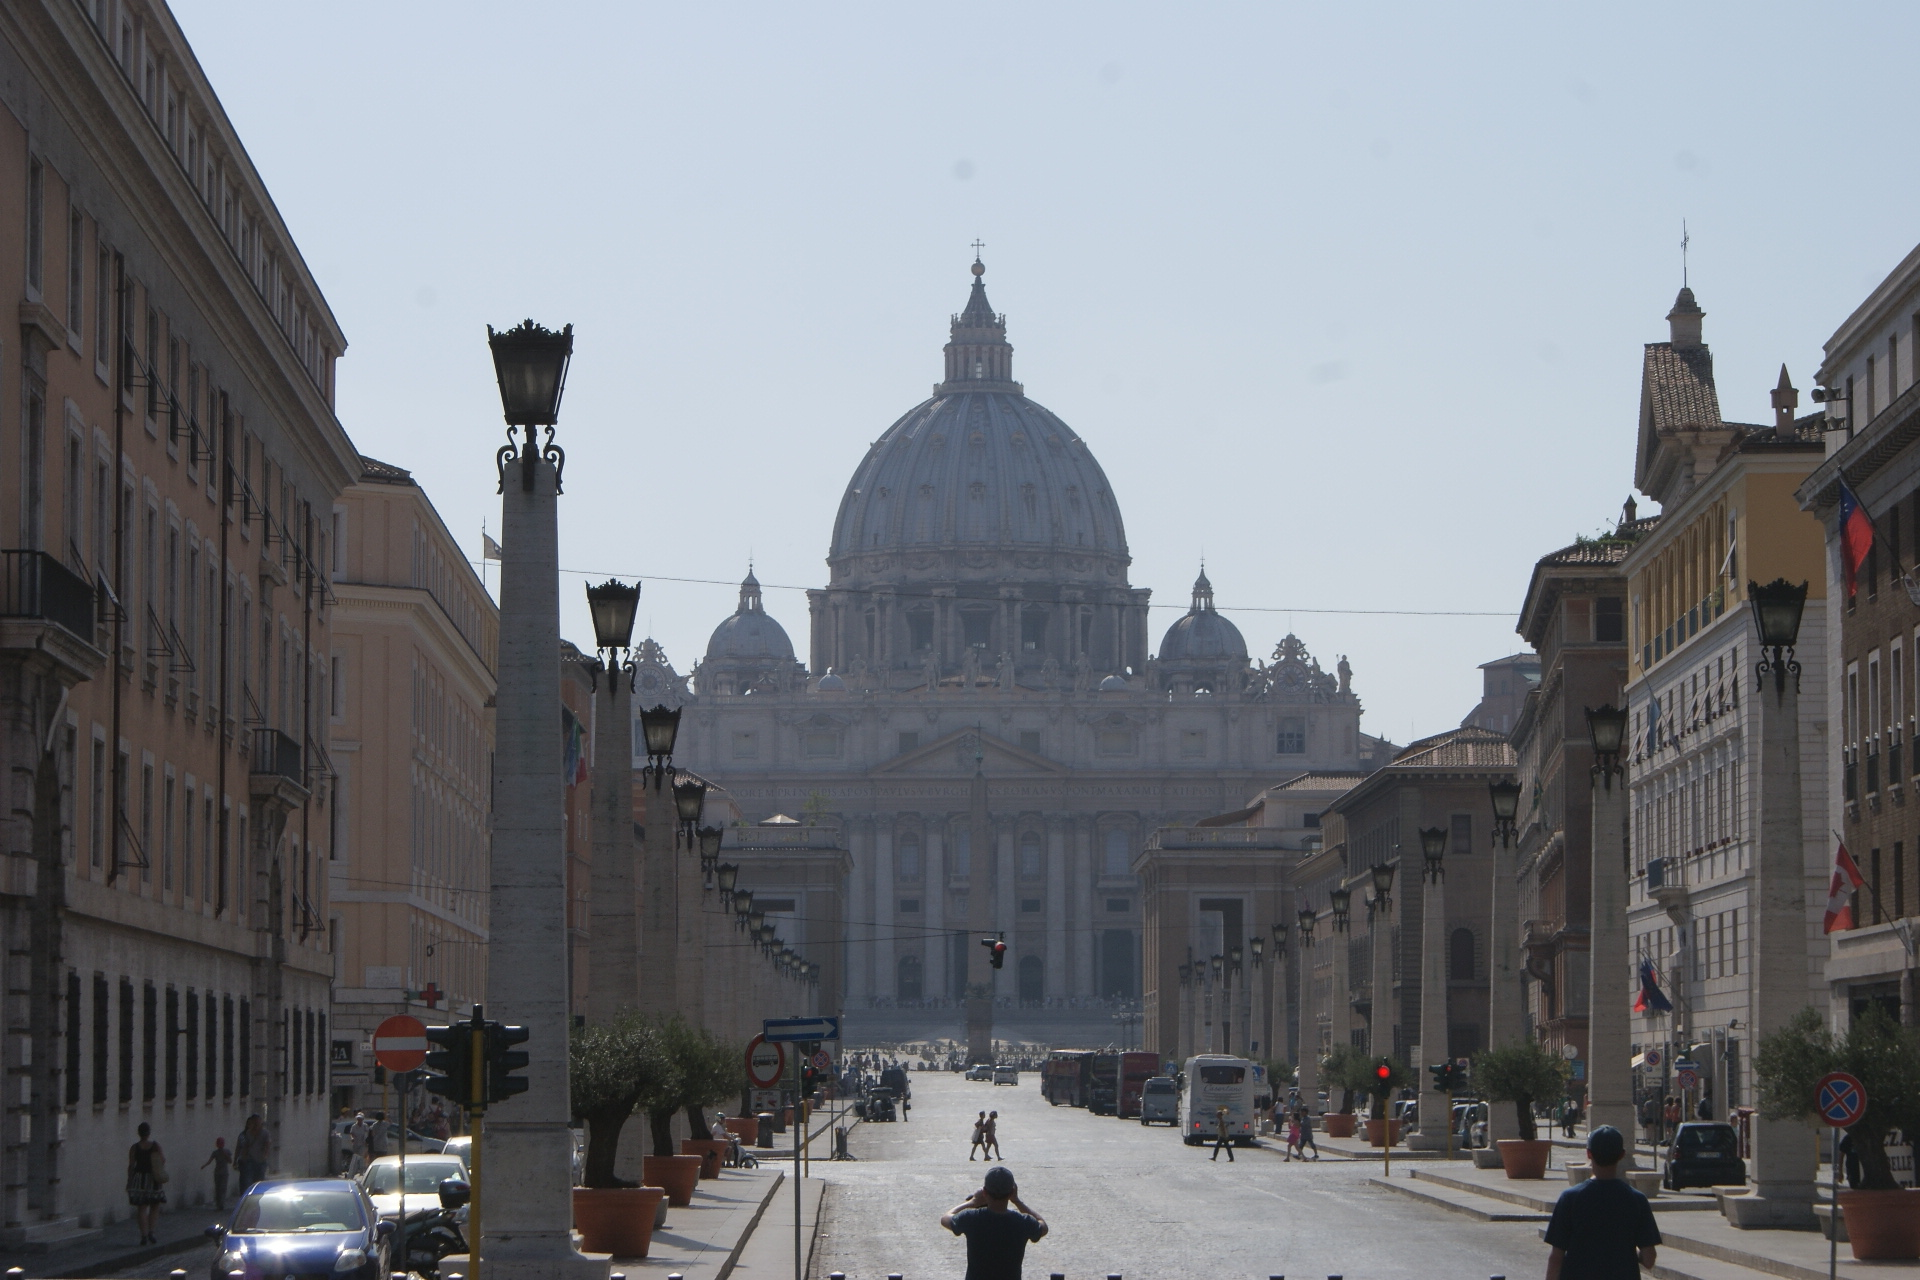 Perspex Police Stations, Thieving Backpackers and Ancient Rome